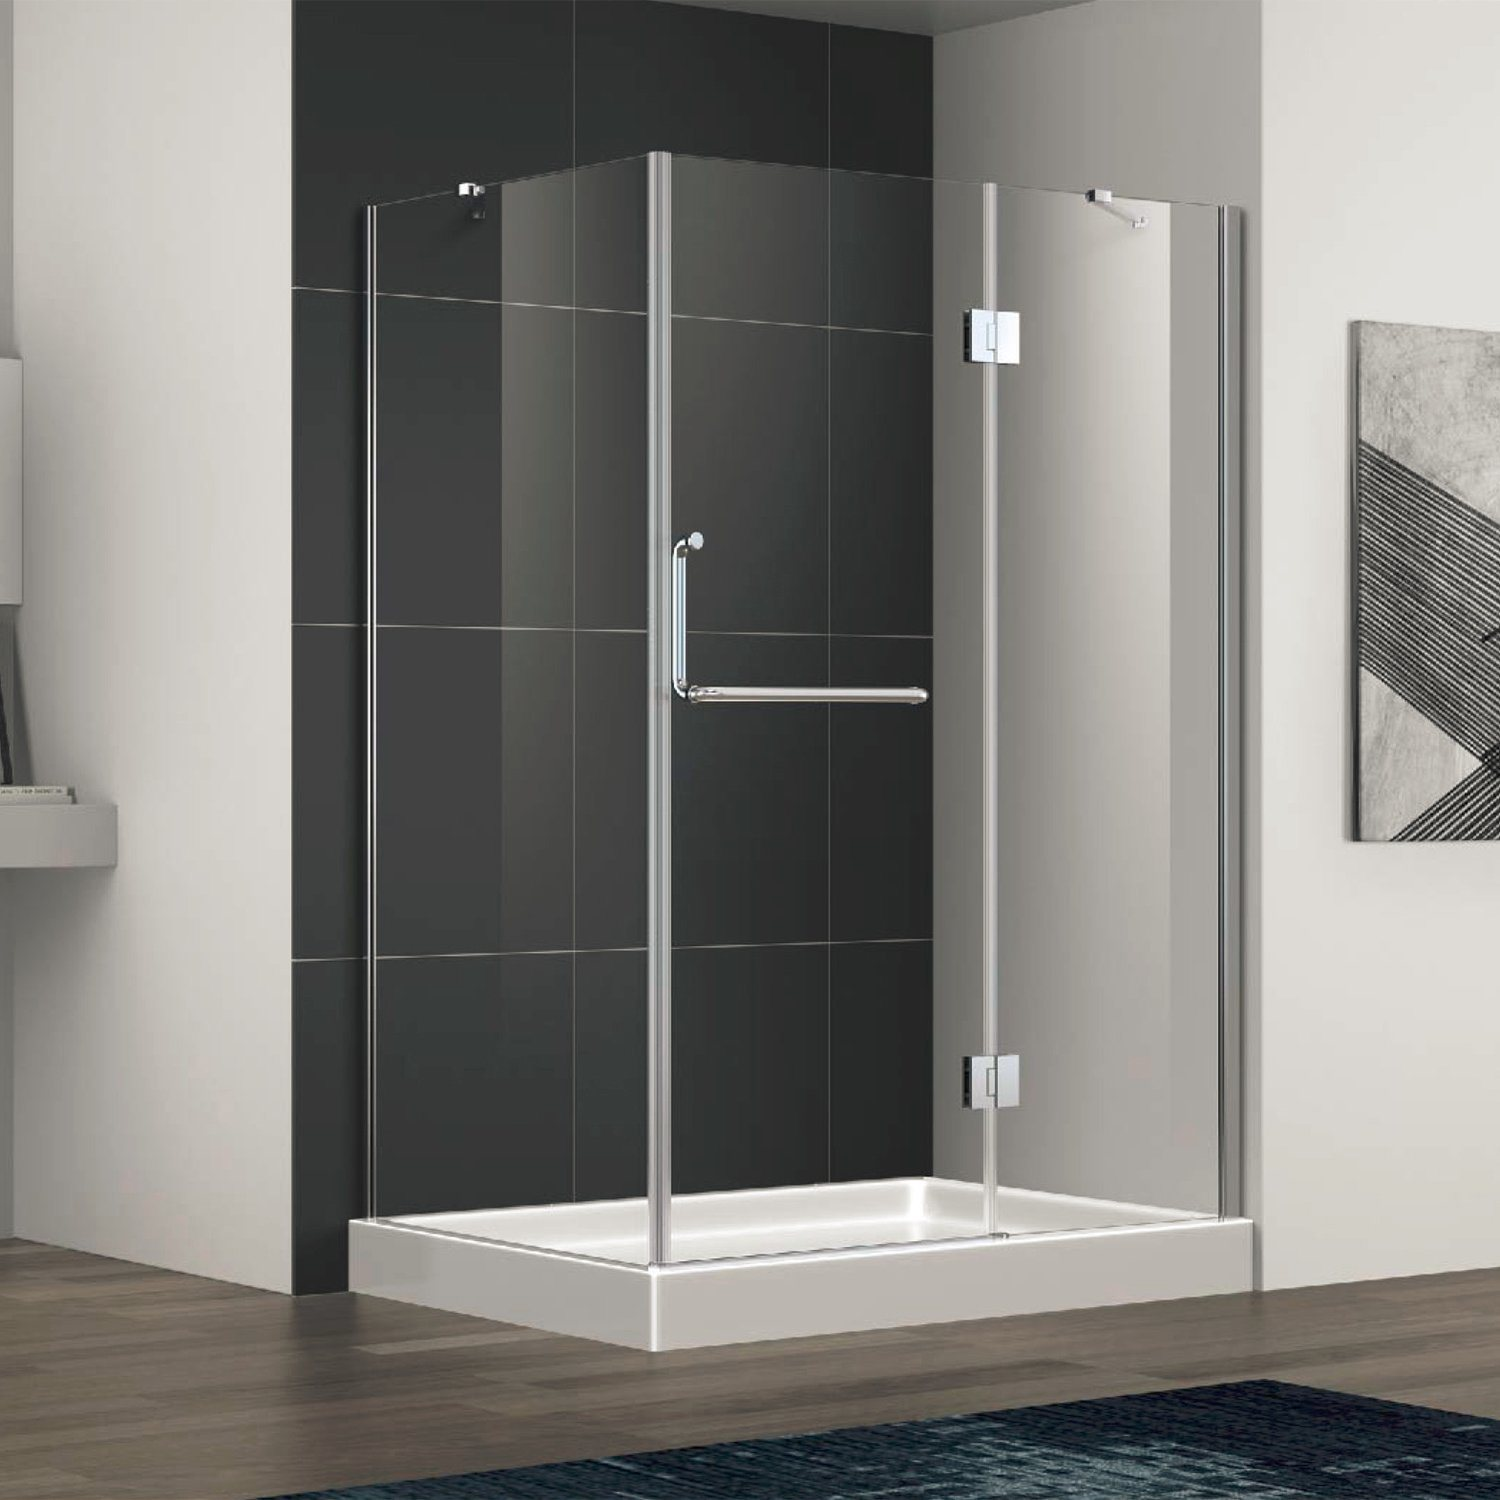 Hot Item Semi Frameless Shower Enclosure Room With Stainless Steel 304 Handle